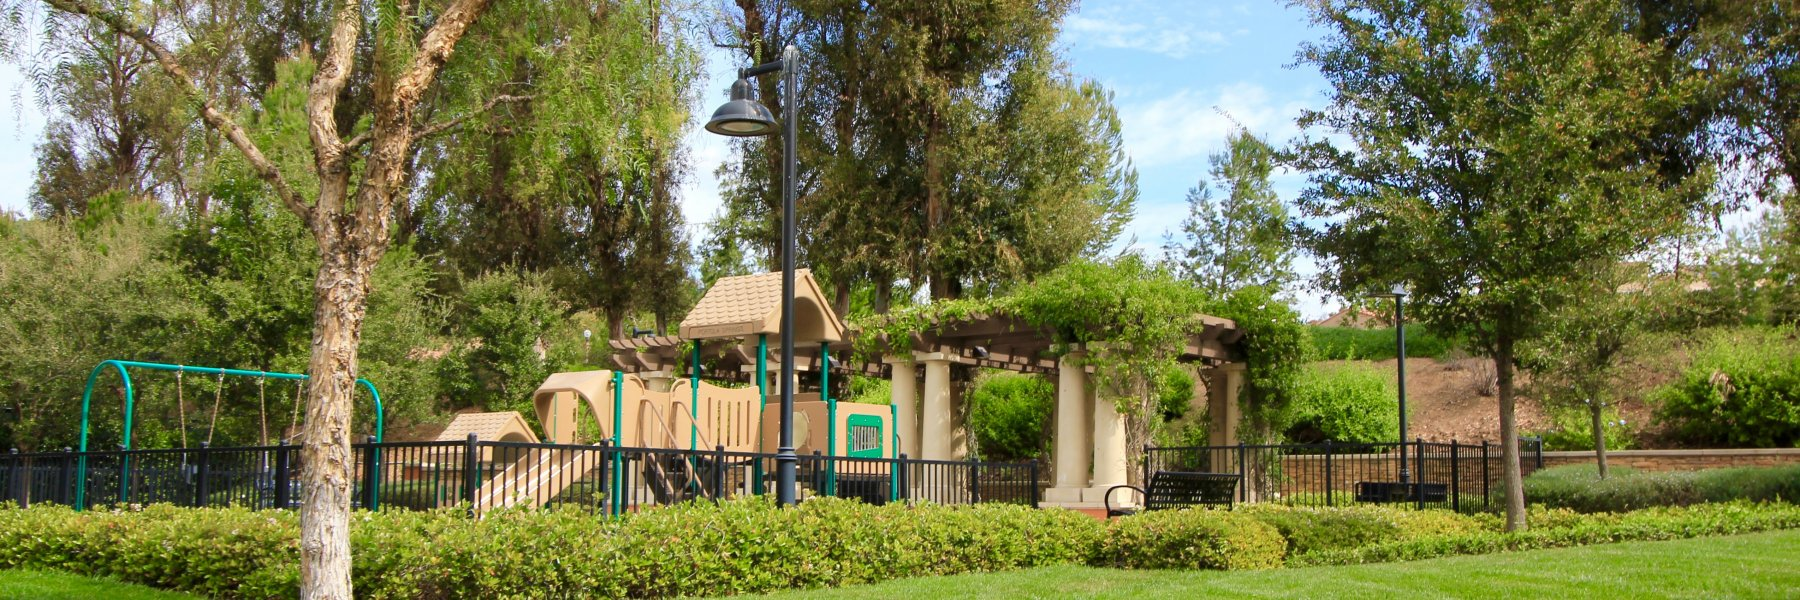 Portola Springs is a community of homes in Irvine California